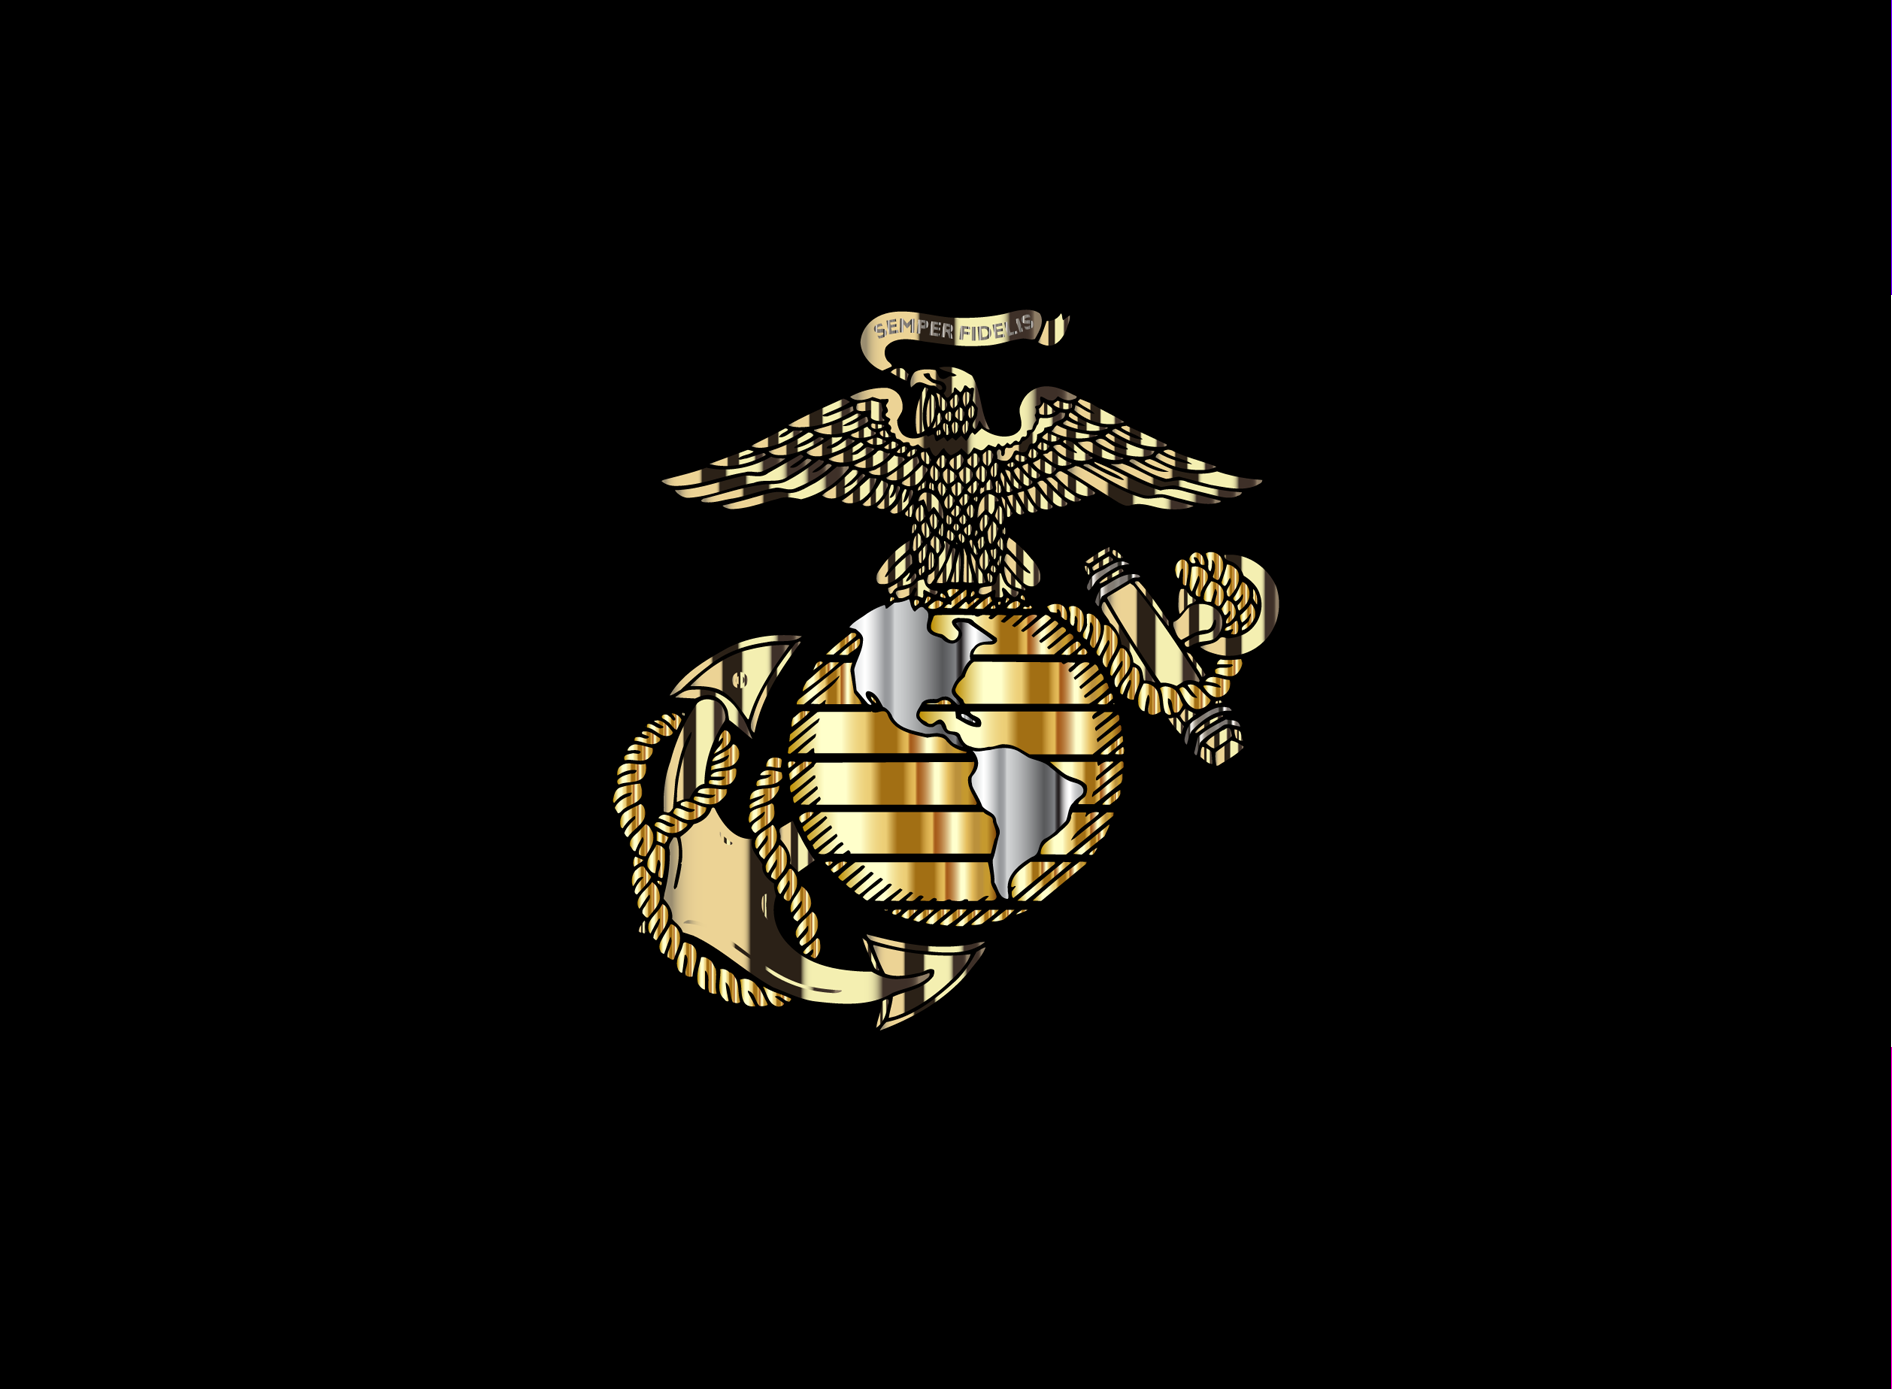 Us marines enlisted ranks chart helpful for the new kaylee search results for free marine corps wallpaper android adorable wallpapers nvjuhfo Gallery